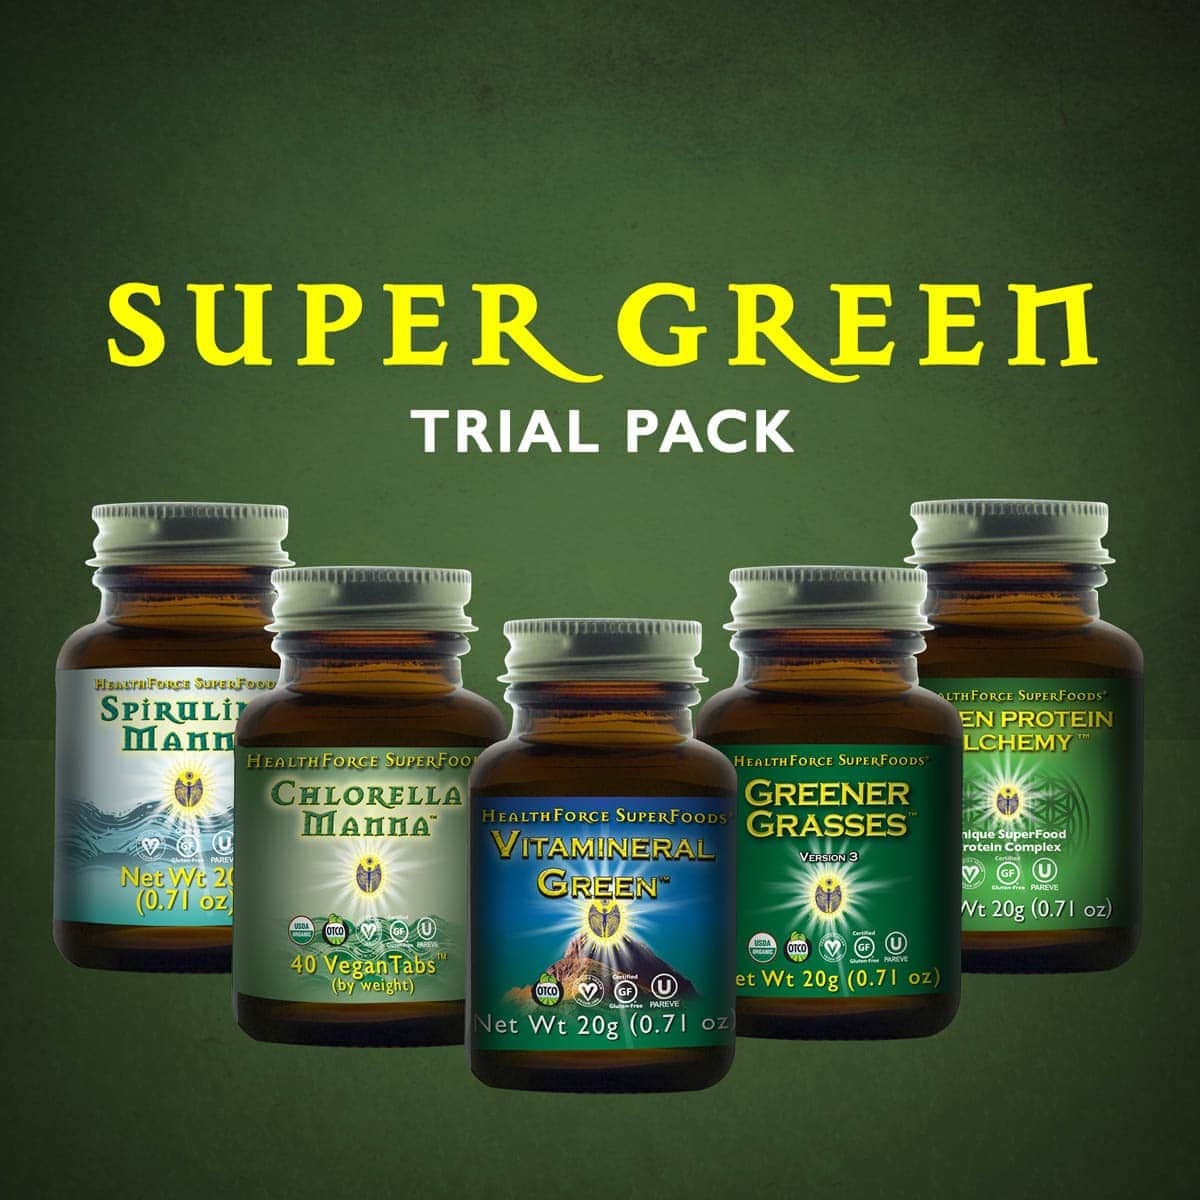 Super Green Trial Pack